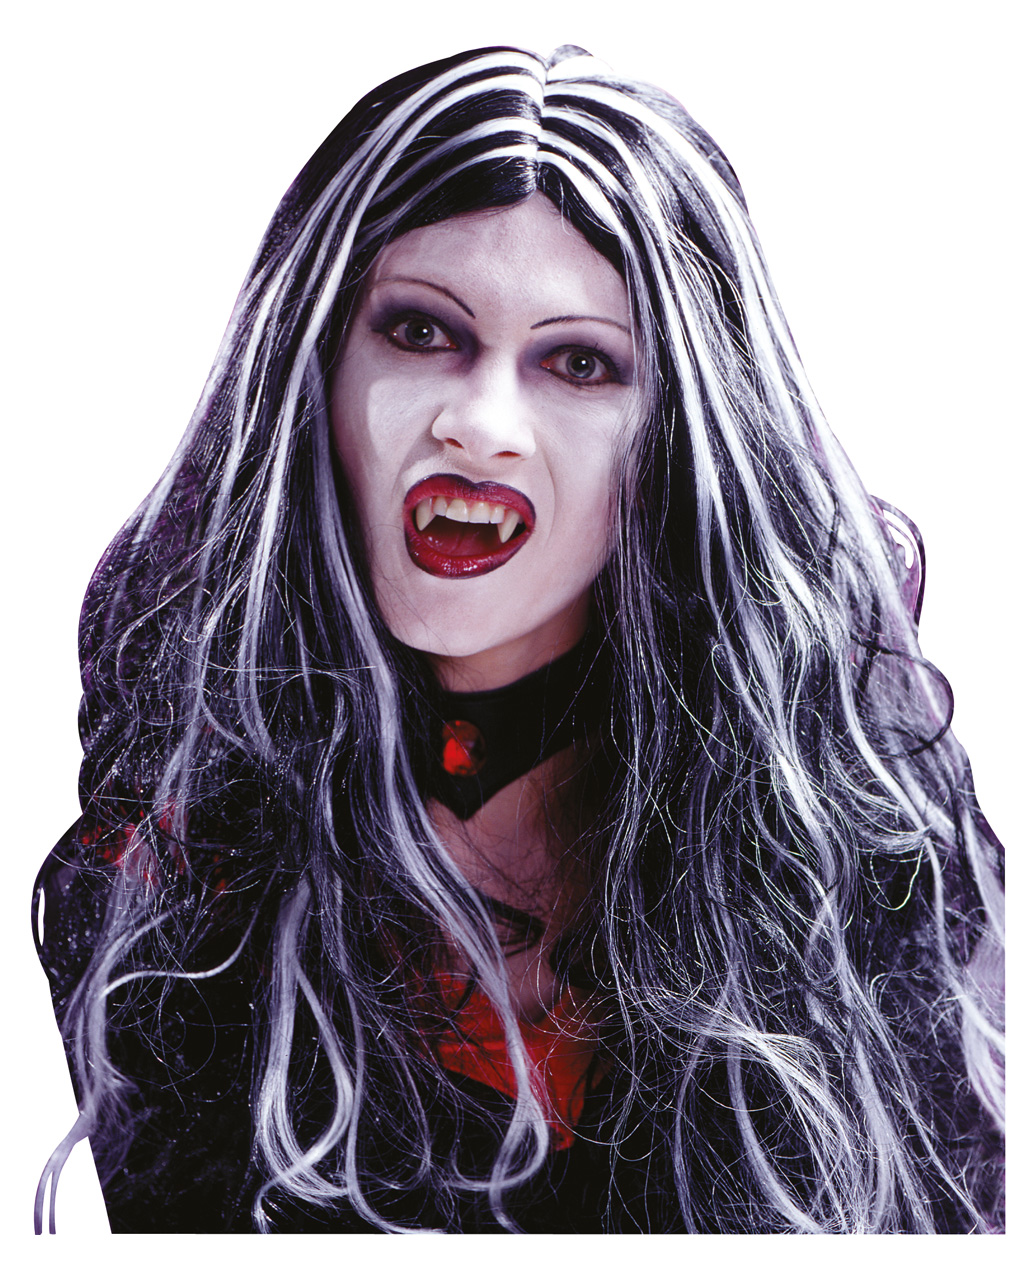 Black and White Vempire Zombie Long Curled Wigs Halloween Costume Accessories